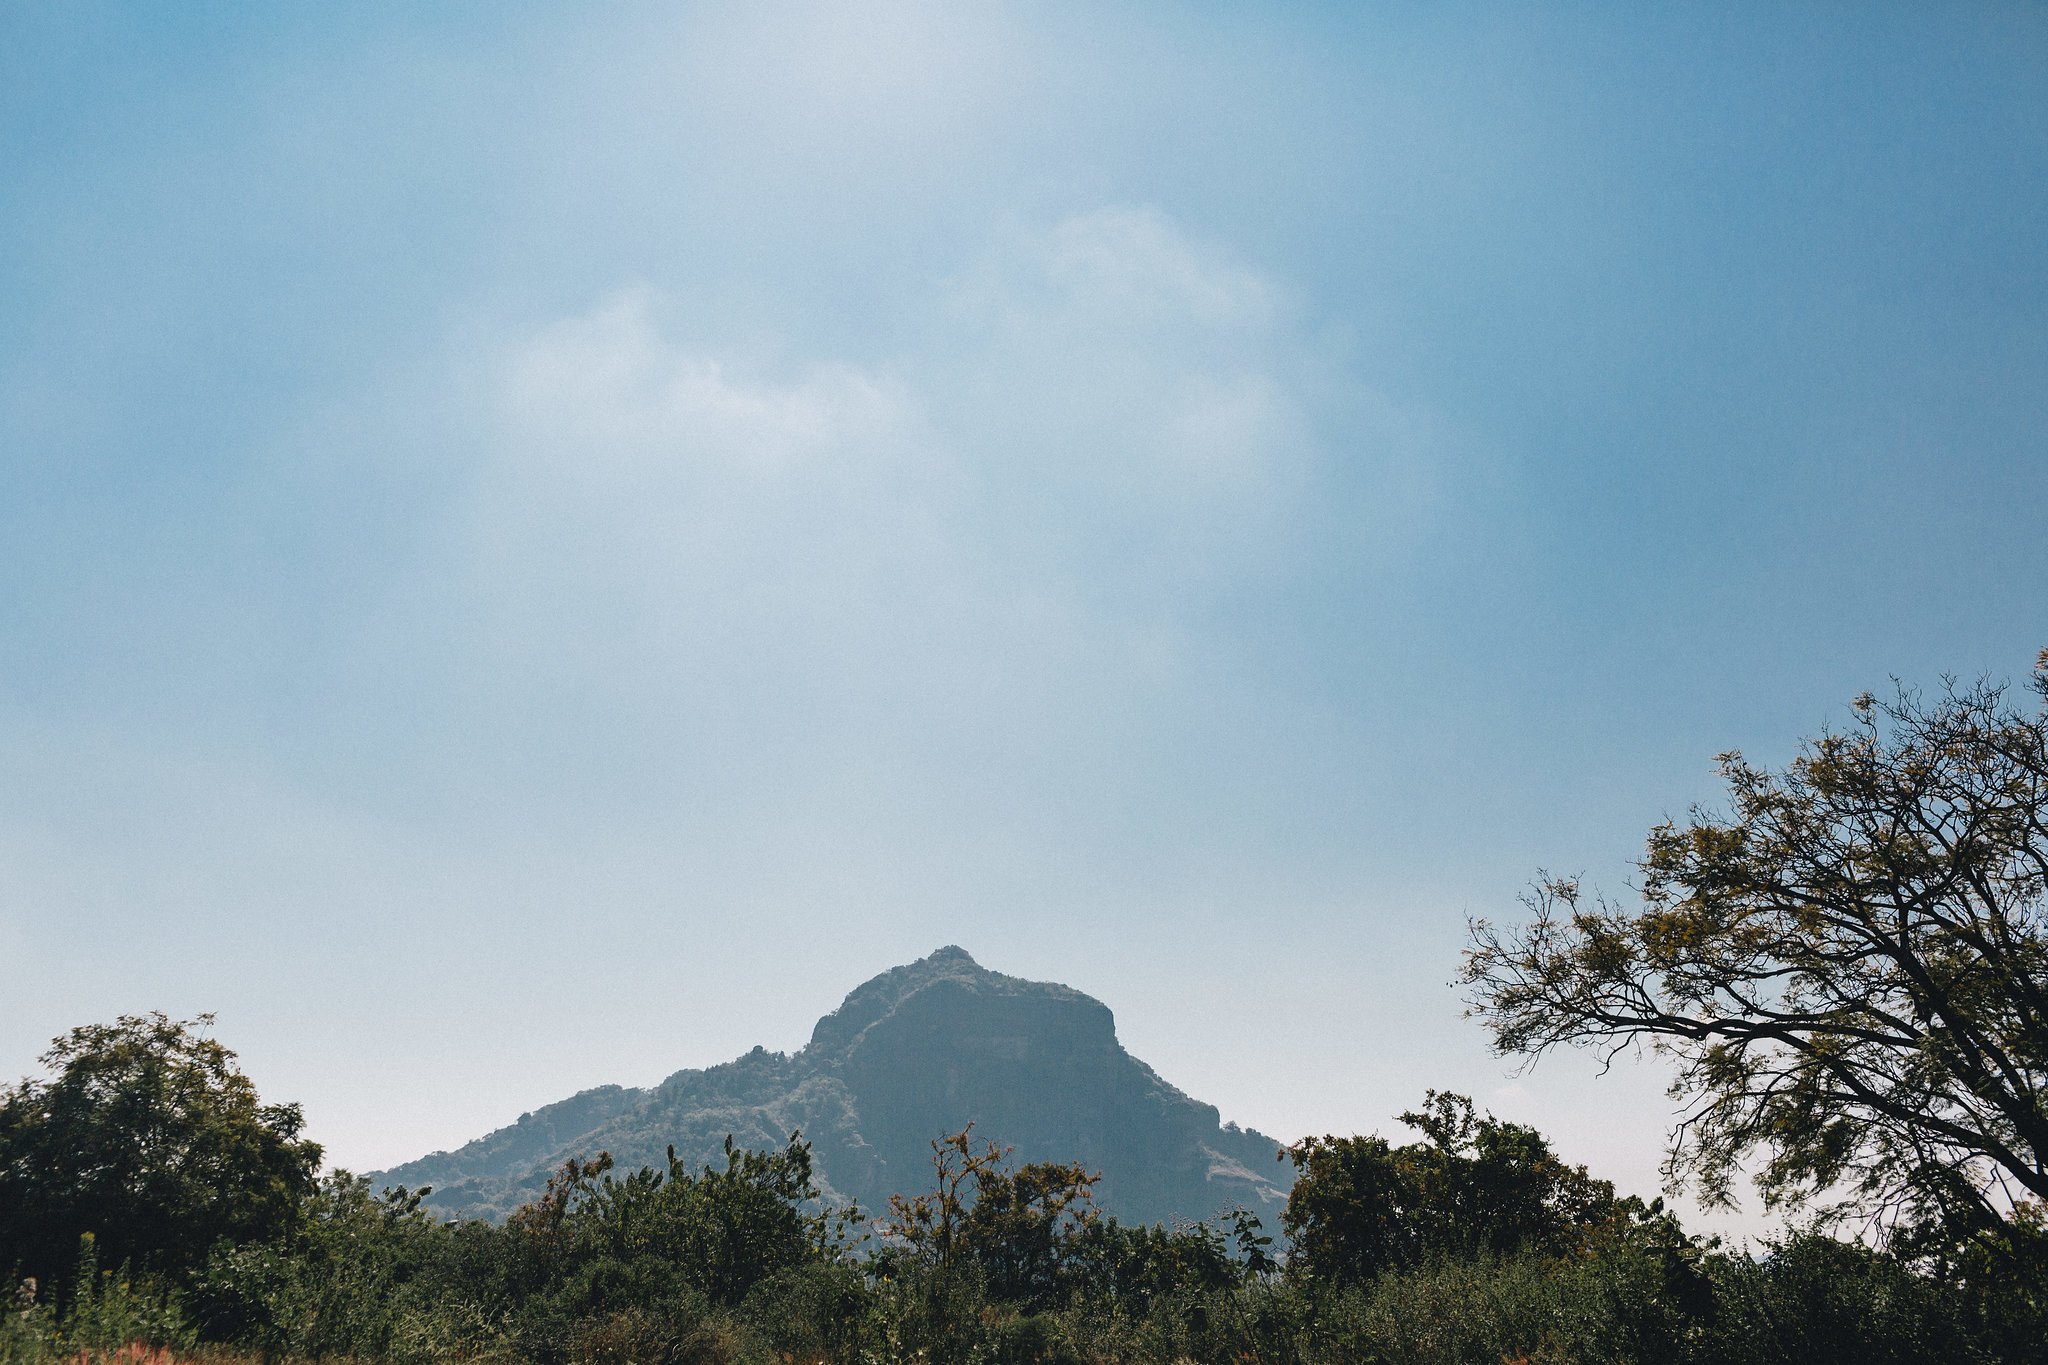 Mountain_Wedding_Tepoztlan_B&D-2.jpg